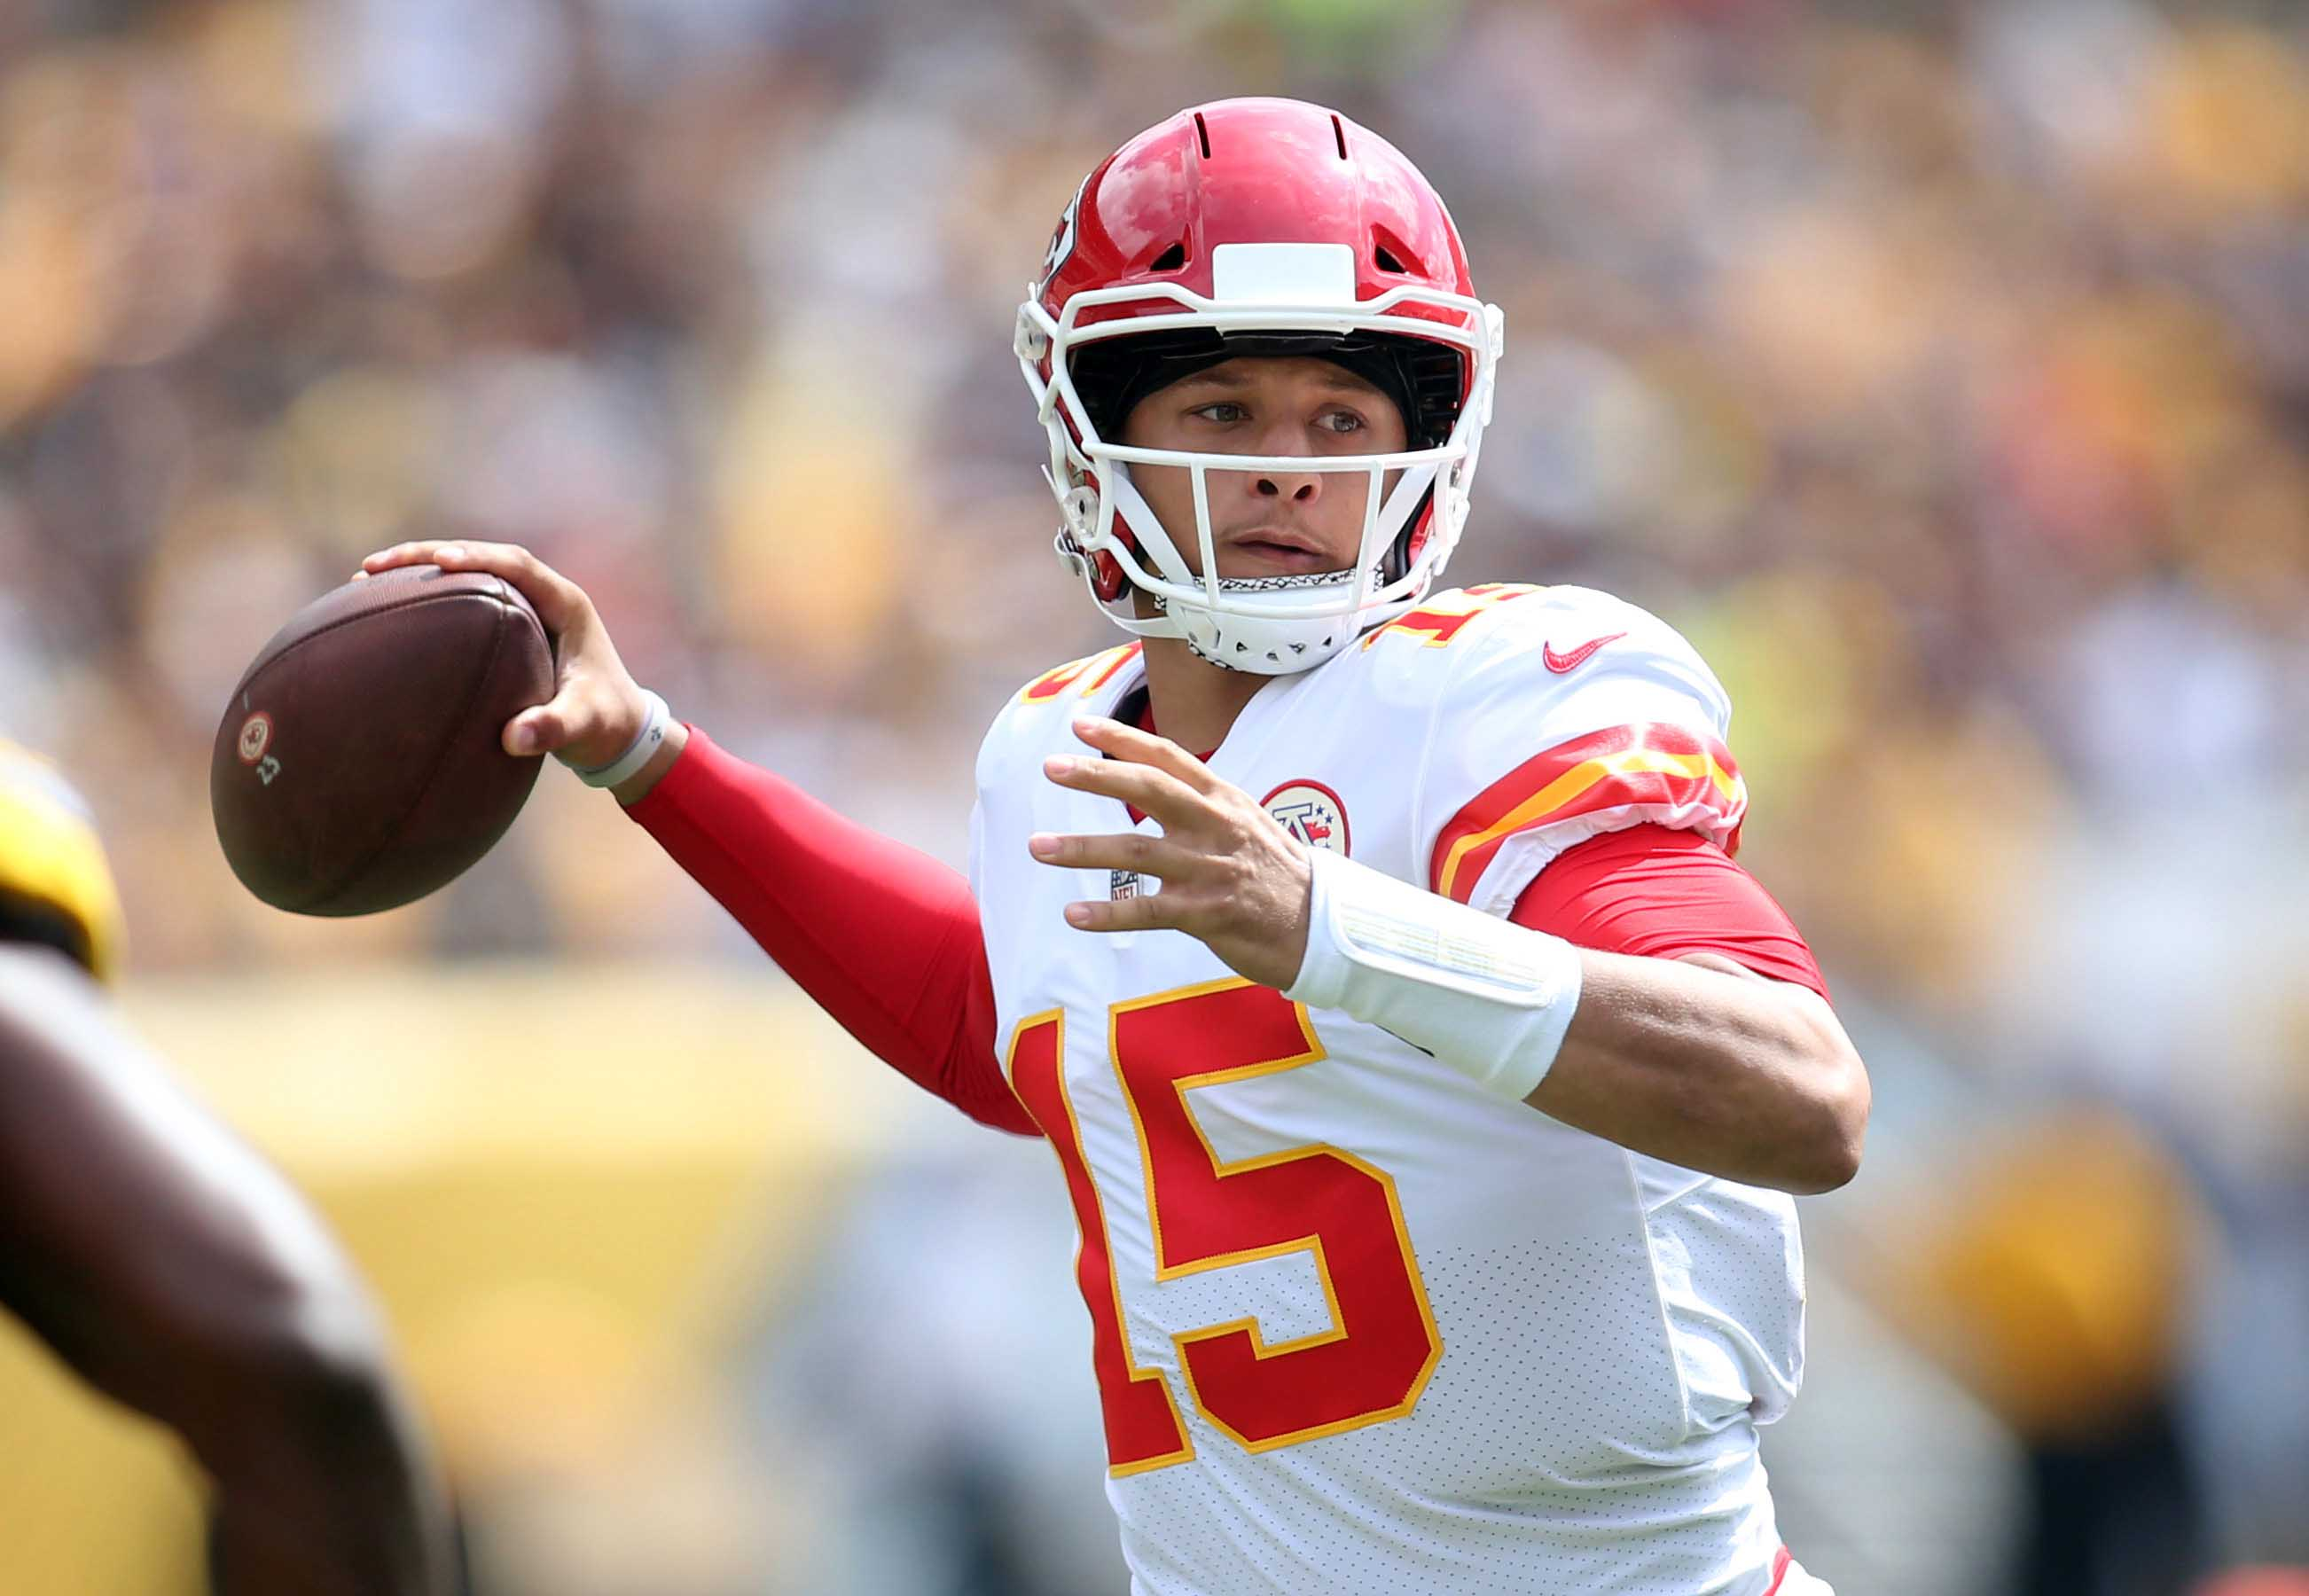 Week 2 fantasy football takeaways: Chiefs' Patrick Mahomes shows he's the real deal